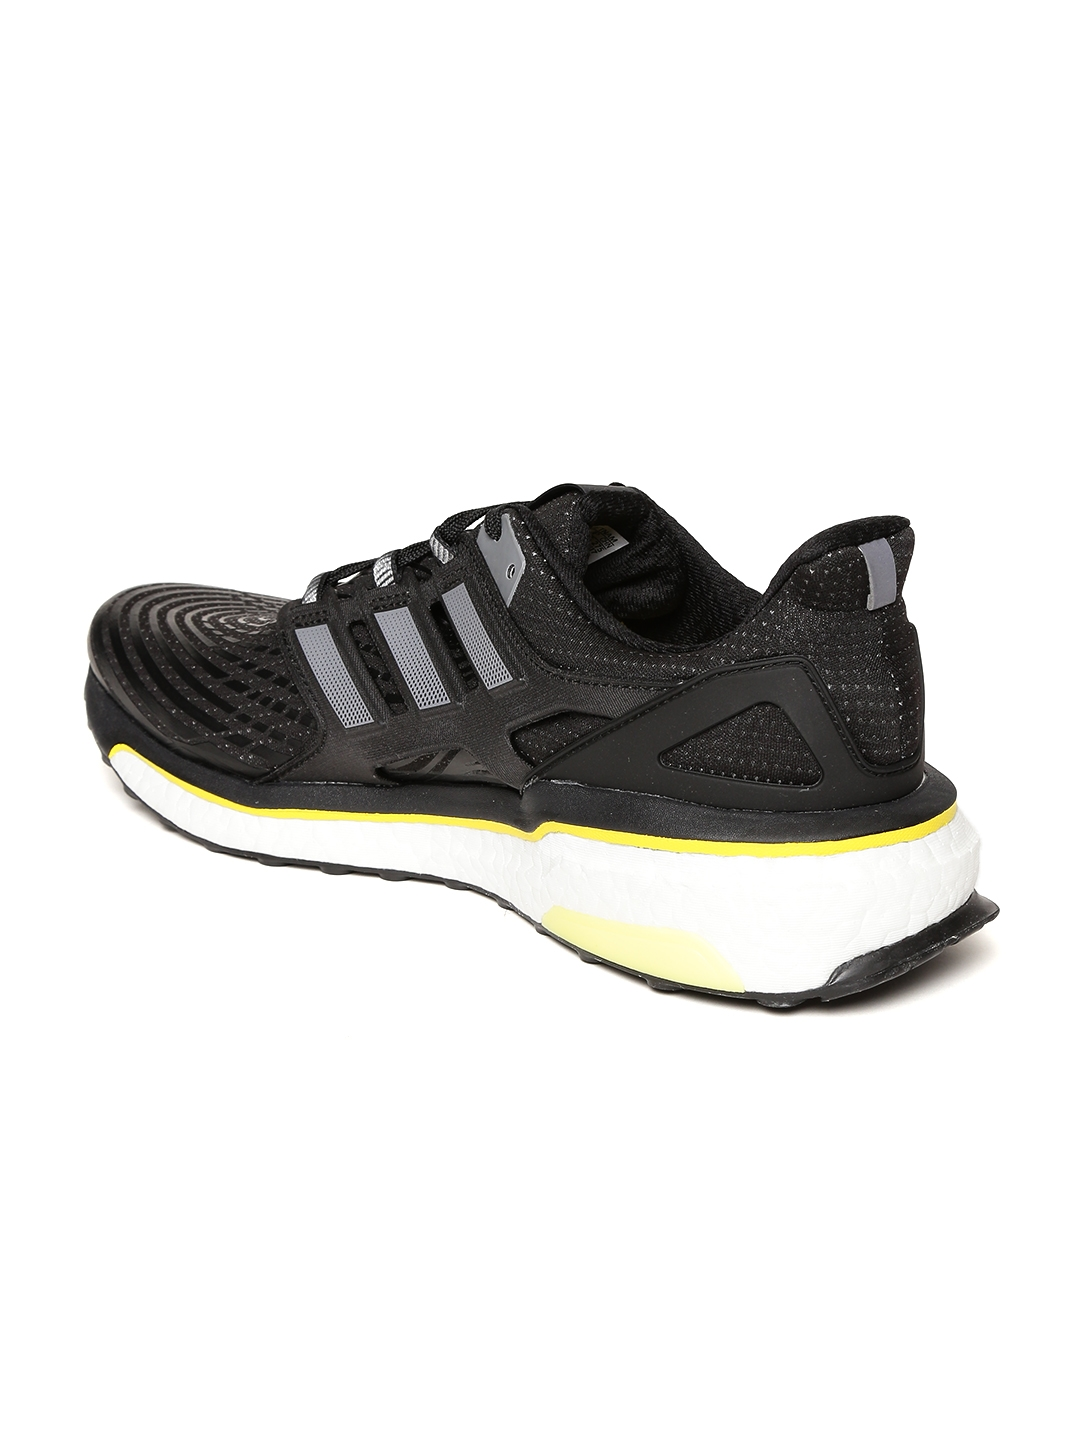 on sale b9e2e ebc58 ADIDAS Men Black Energy Boost Running Shoes